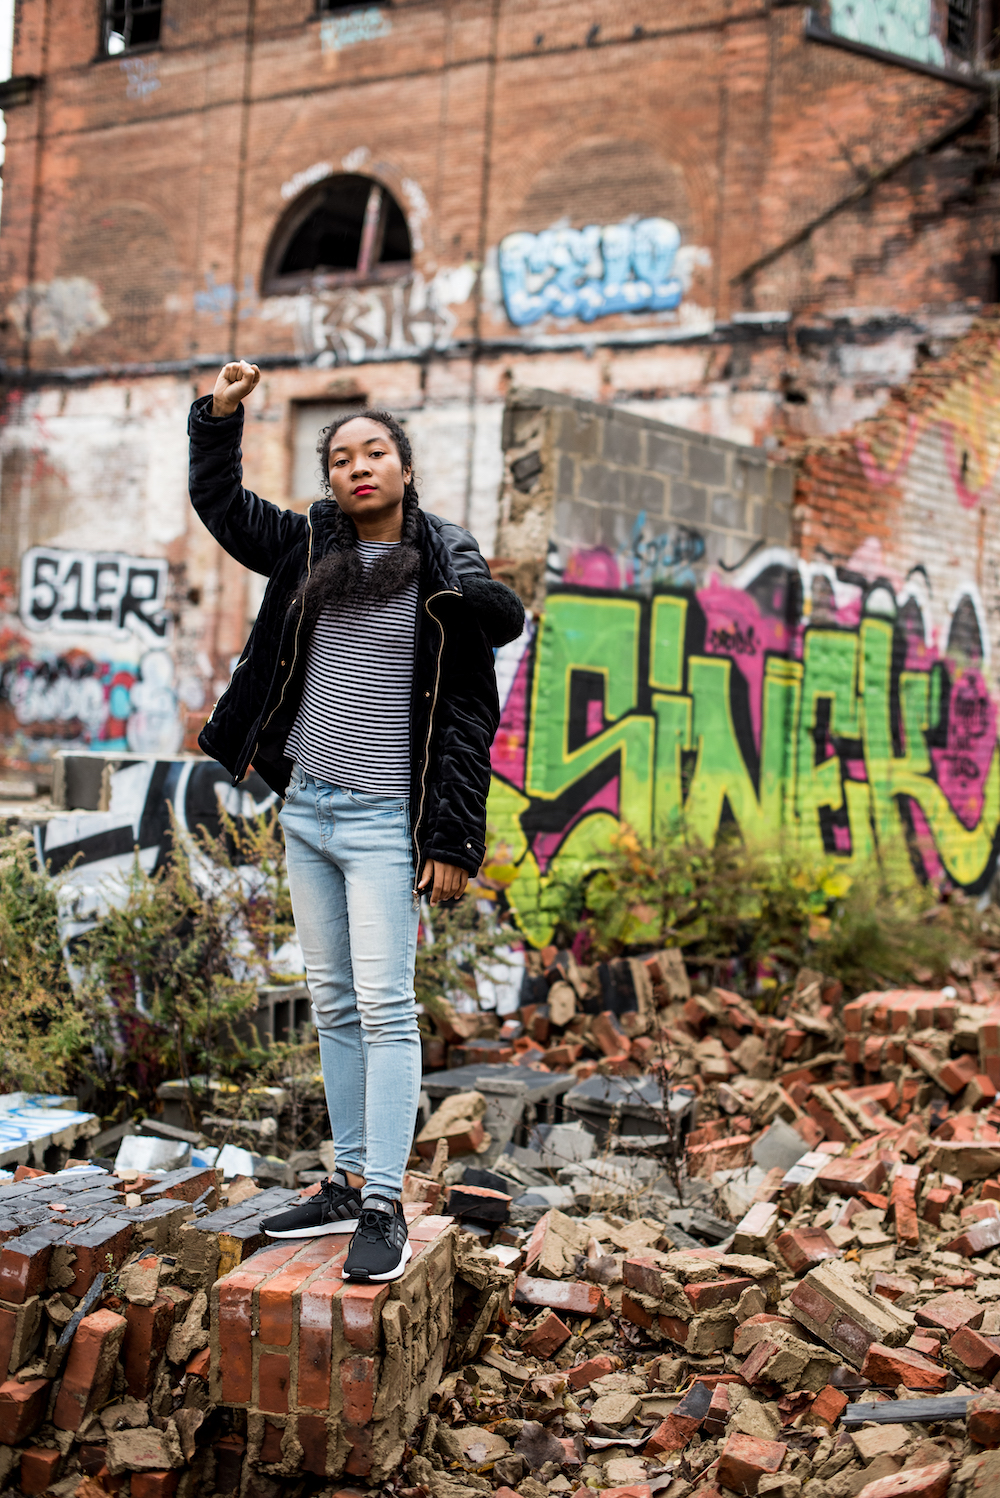 Woman standing in front of graffiti with fist lifted in the air